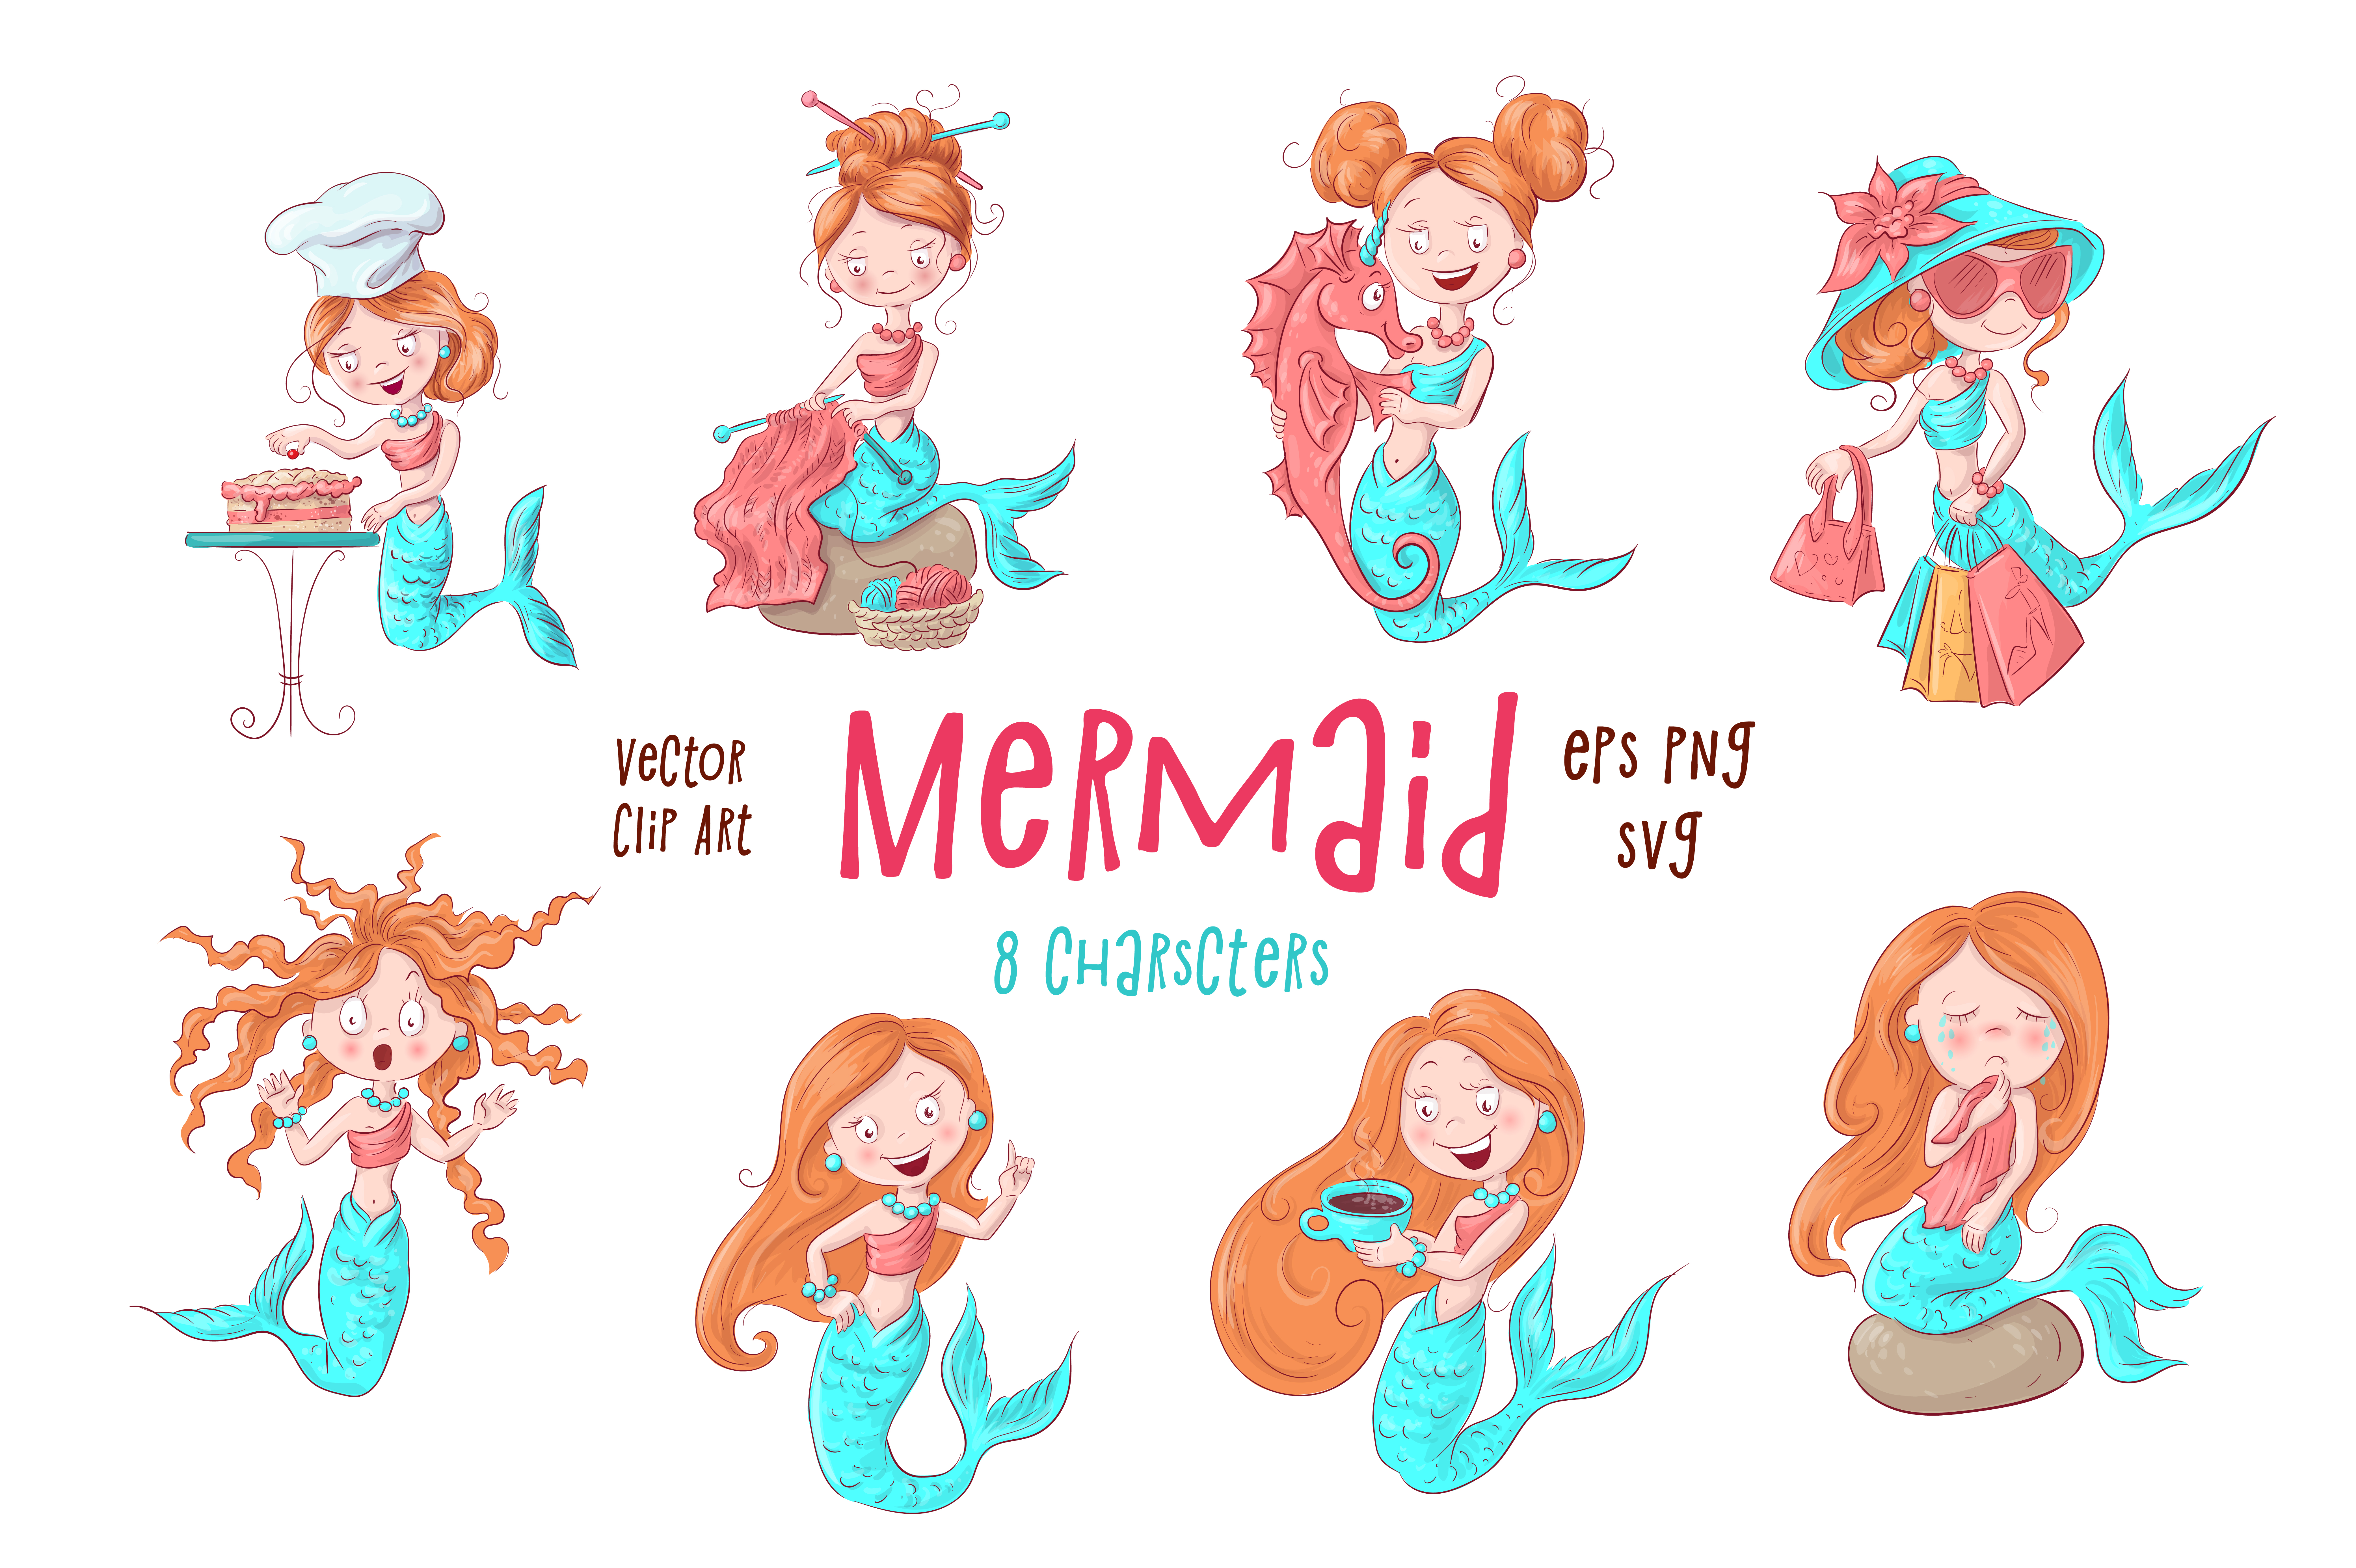 Download Free Mermaid Graphic By Nicjulia Creative Fabrica for Cricut Explore, Silhouette and other cutting machines.